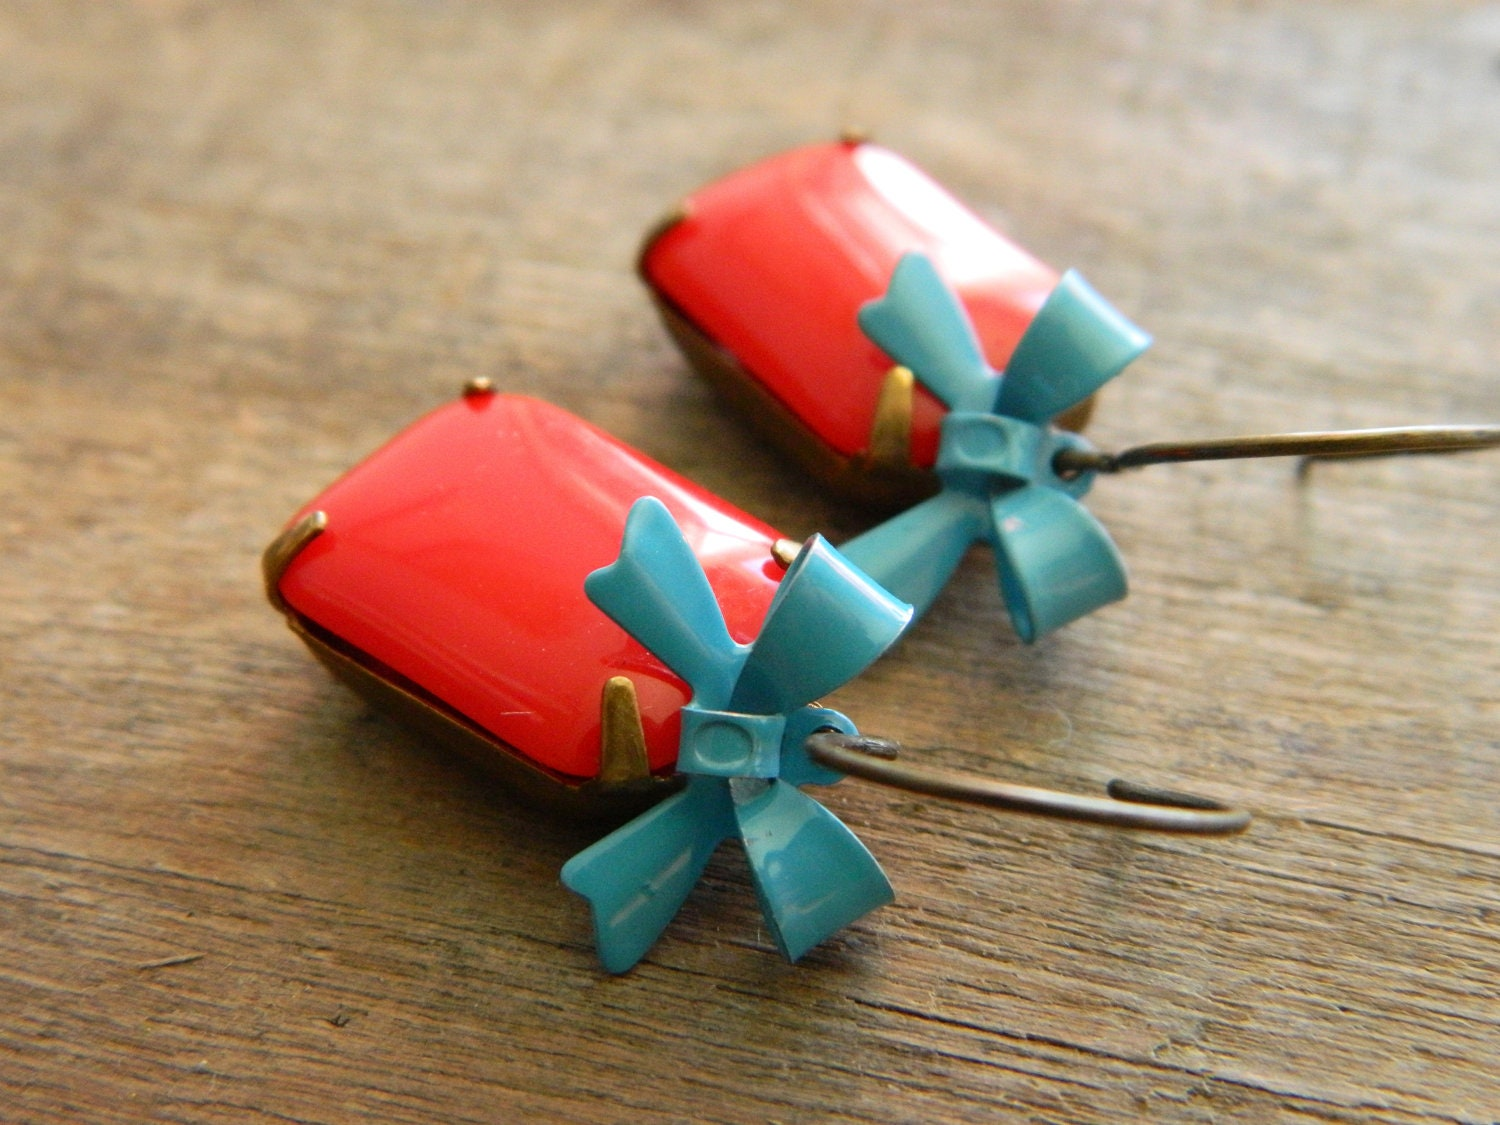 Vintage Chic Earrings Retro Red Opaque Glass and Blue Bows - Bow so Pretty